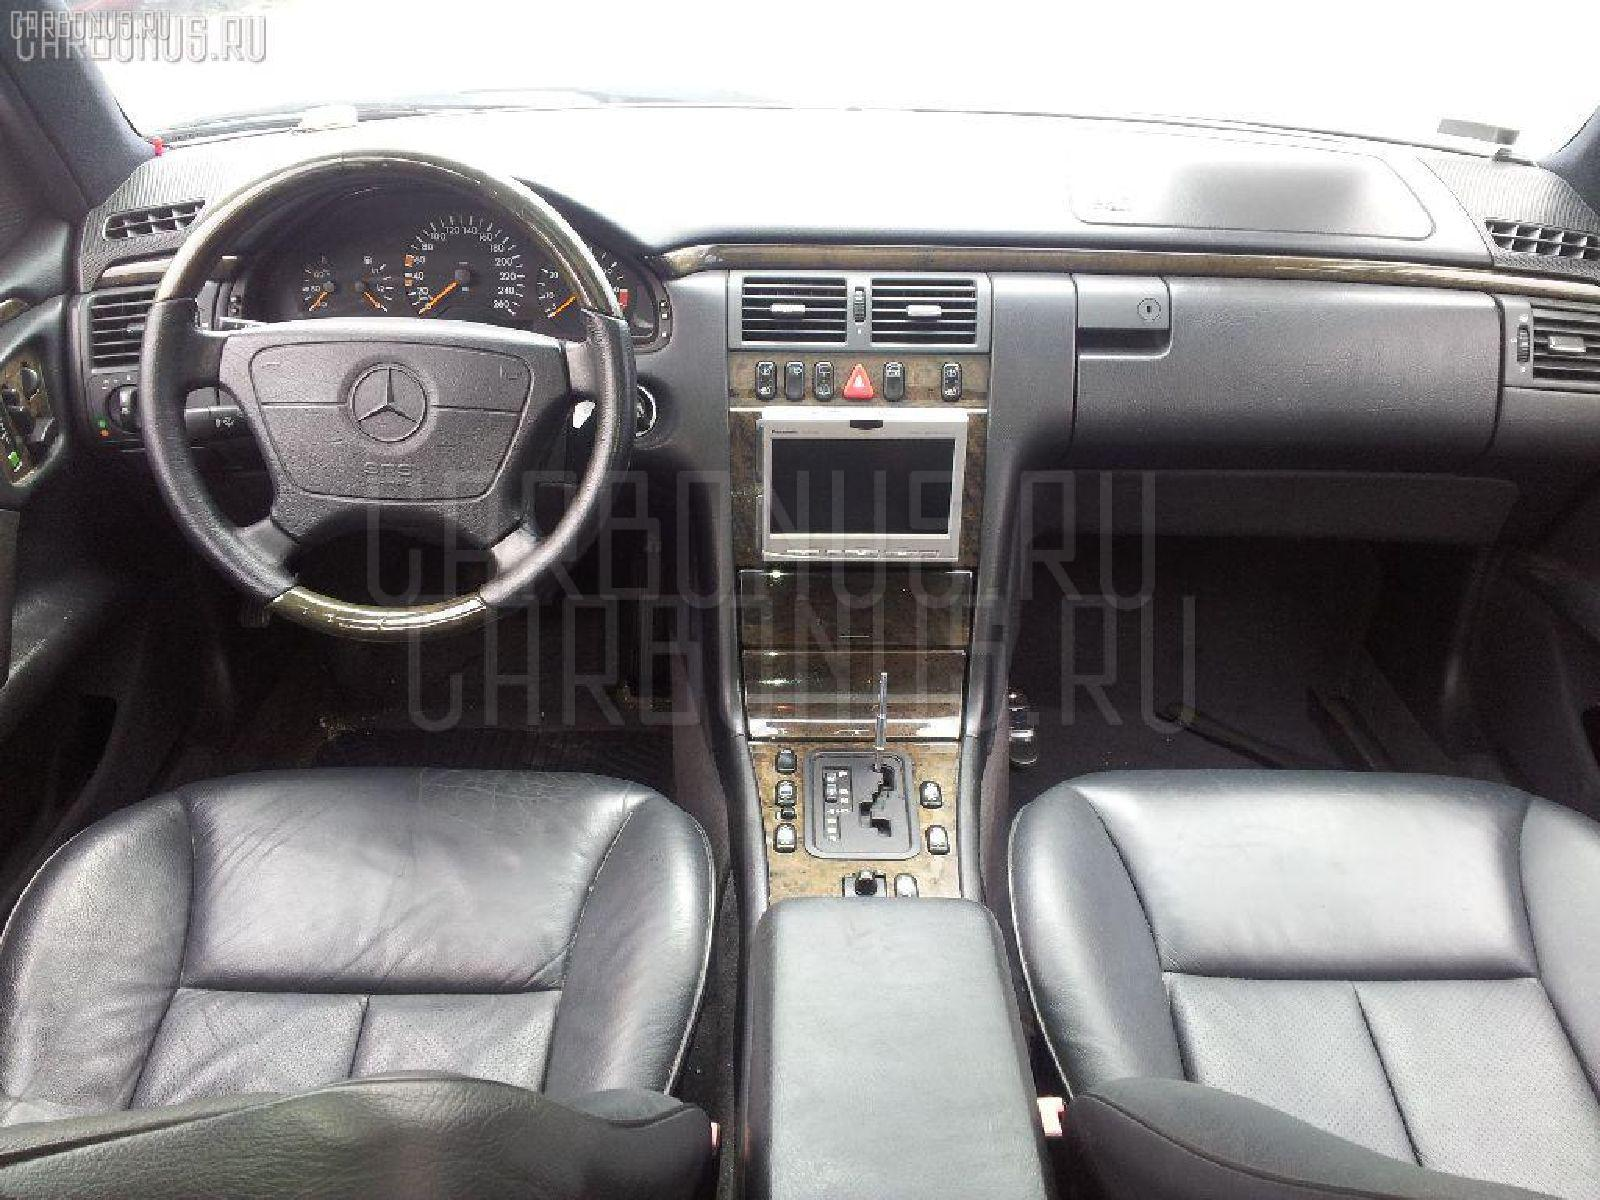 Air bag MERCEDES-BENZ E-CLASS STATION WAGON S210.265 Фото 7